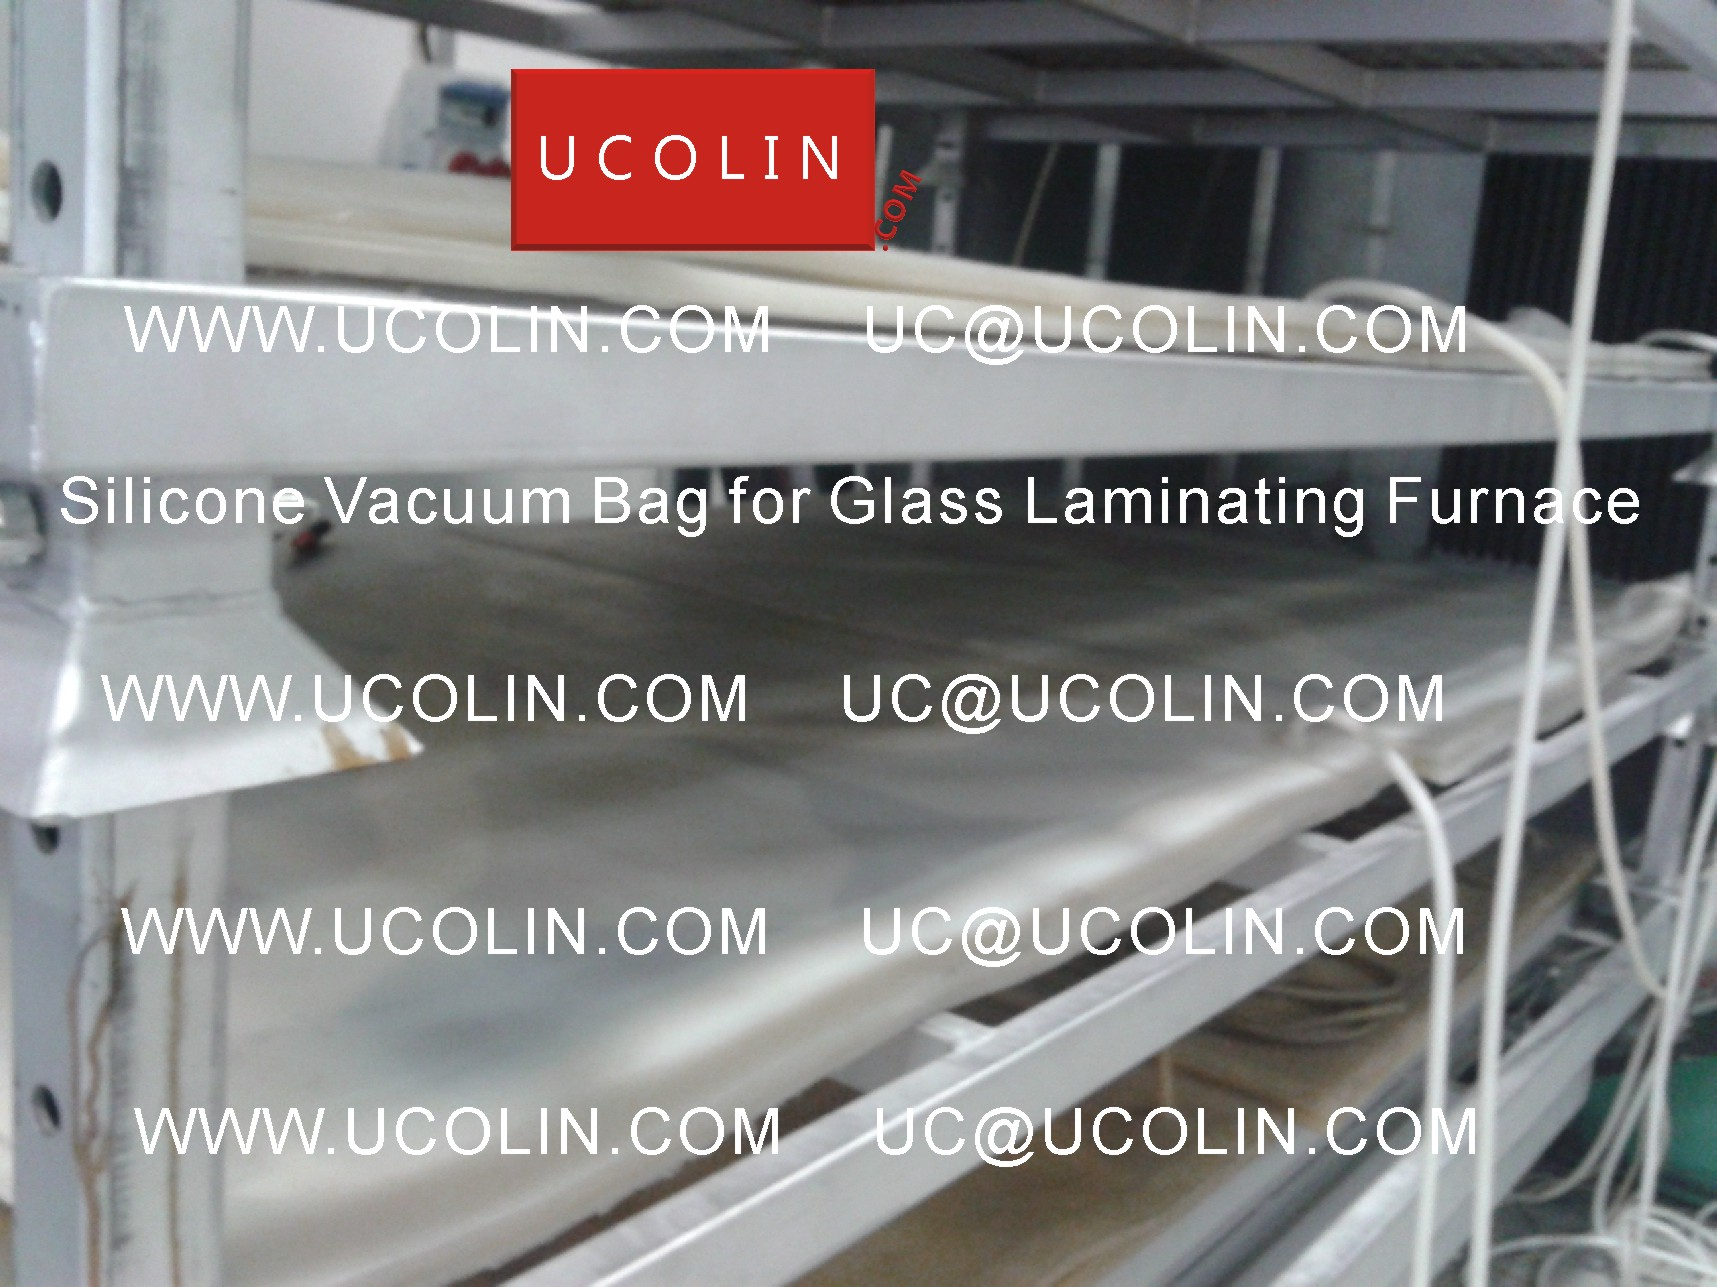 03 Autoclave Silicone Vacuum Bag for Safety Glass Laminating Furnace